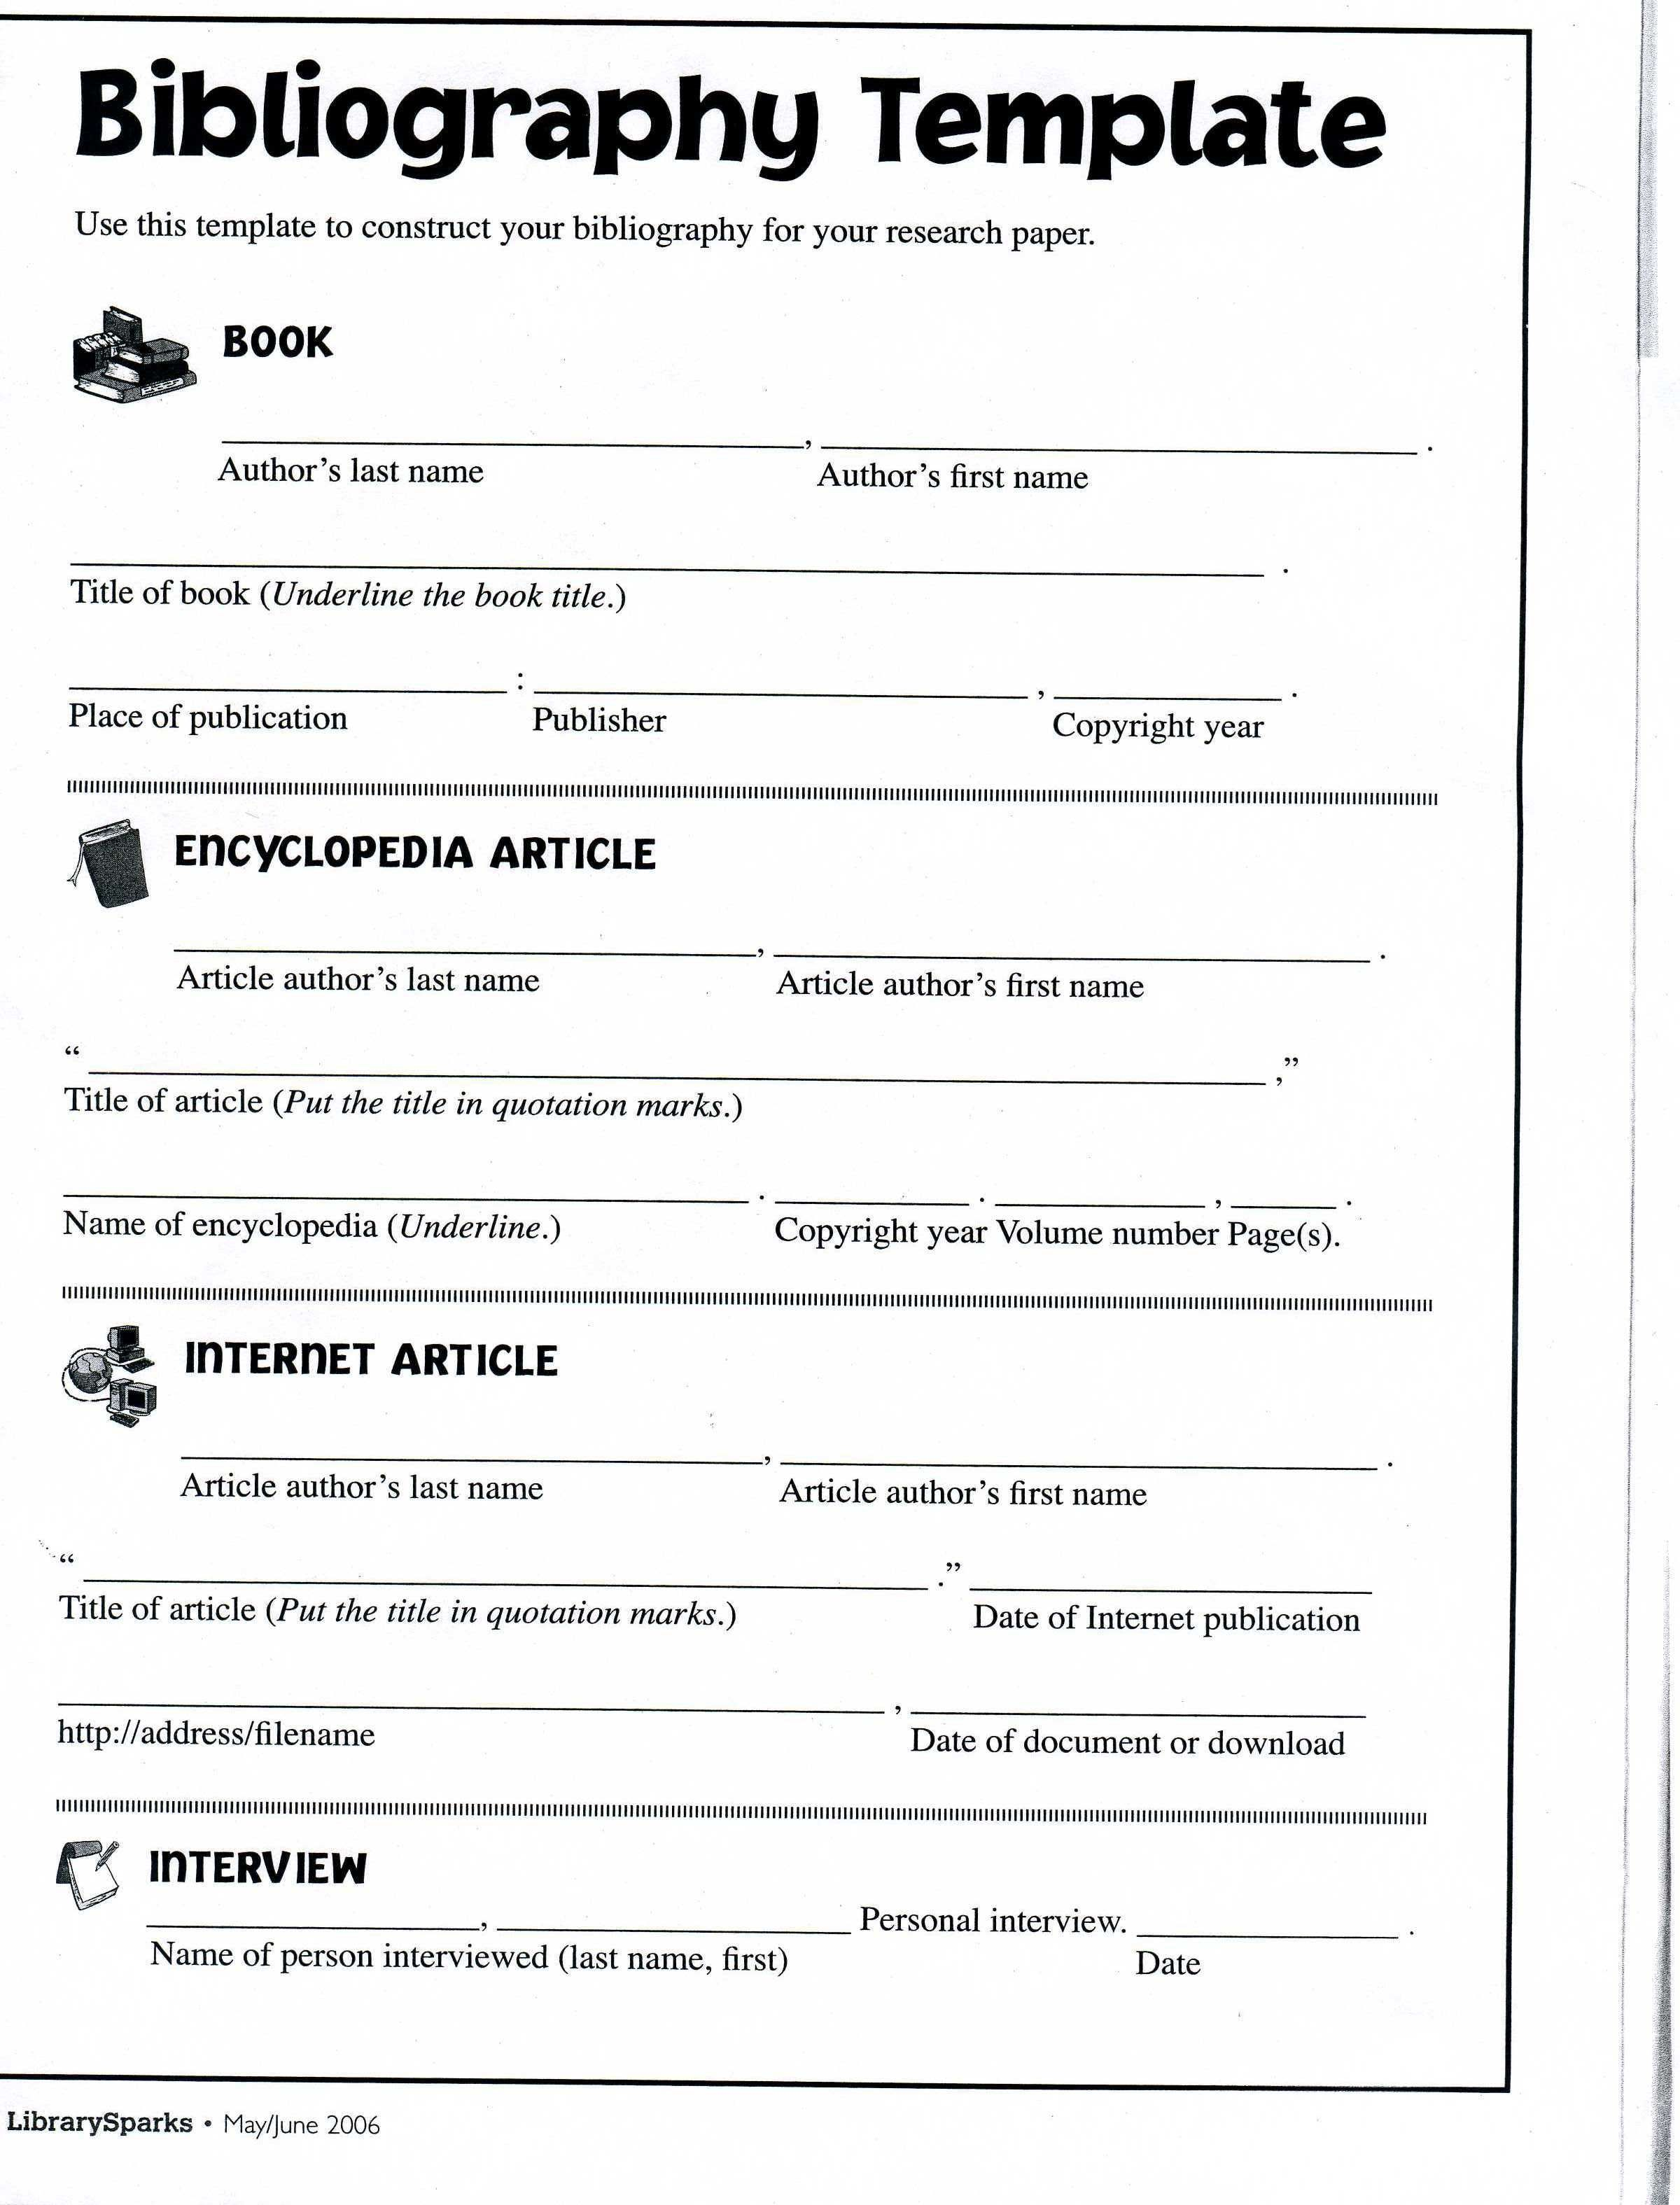 Worksheets Mla Citation Practice Worksheet apa citation practice worksheet sharebrowse worksheet